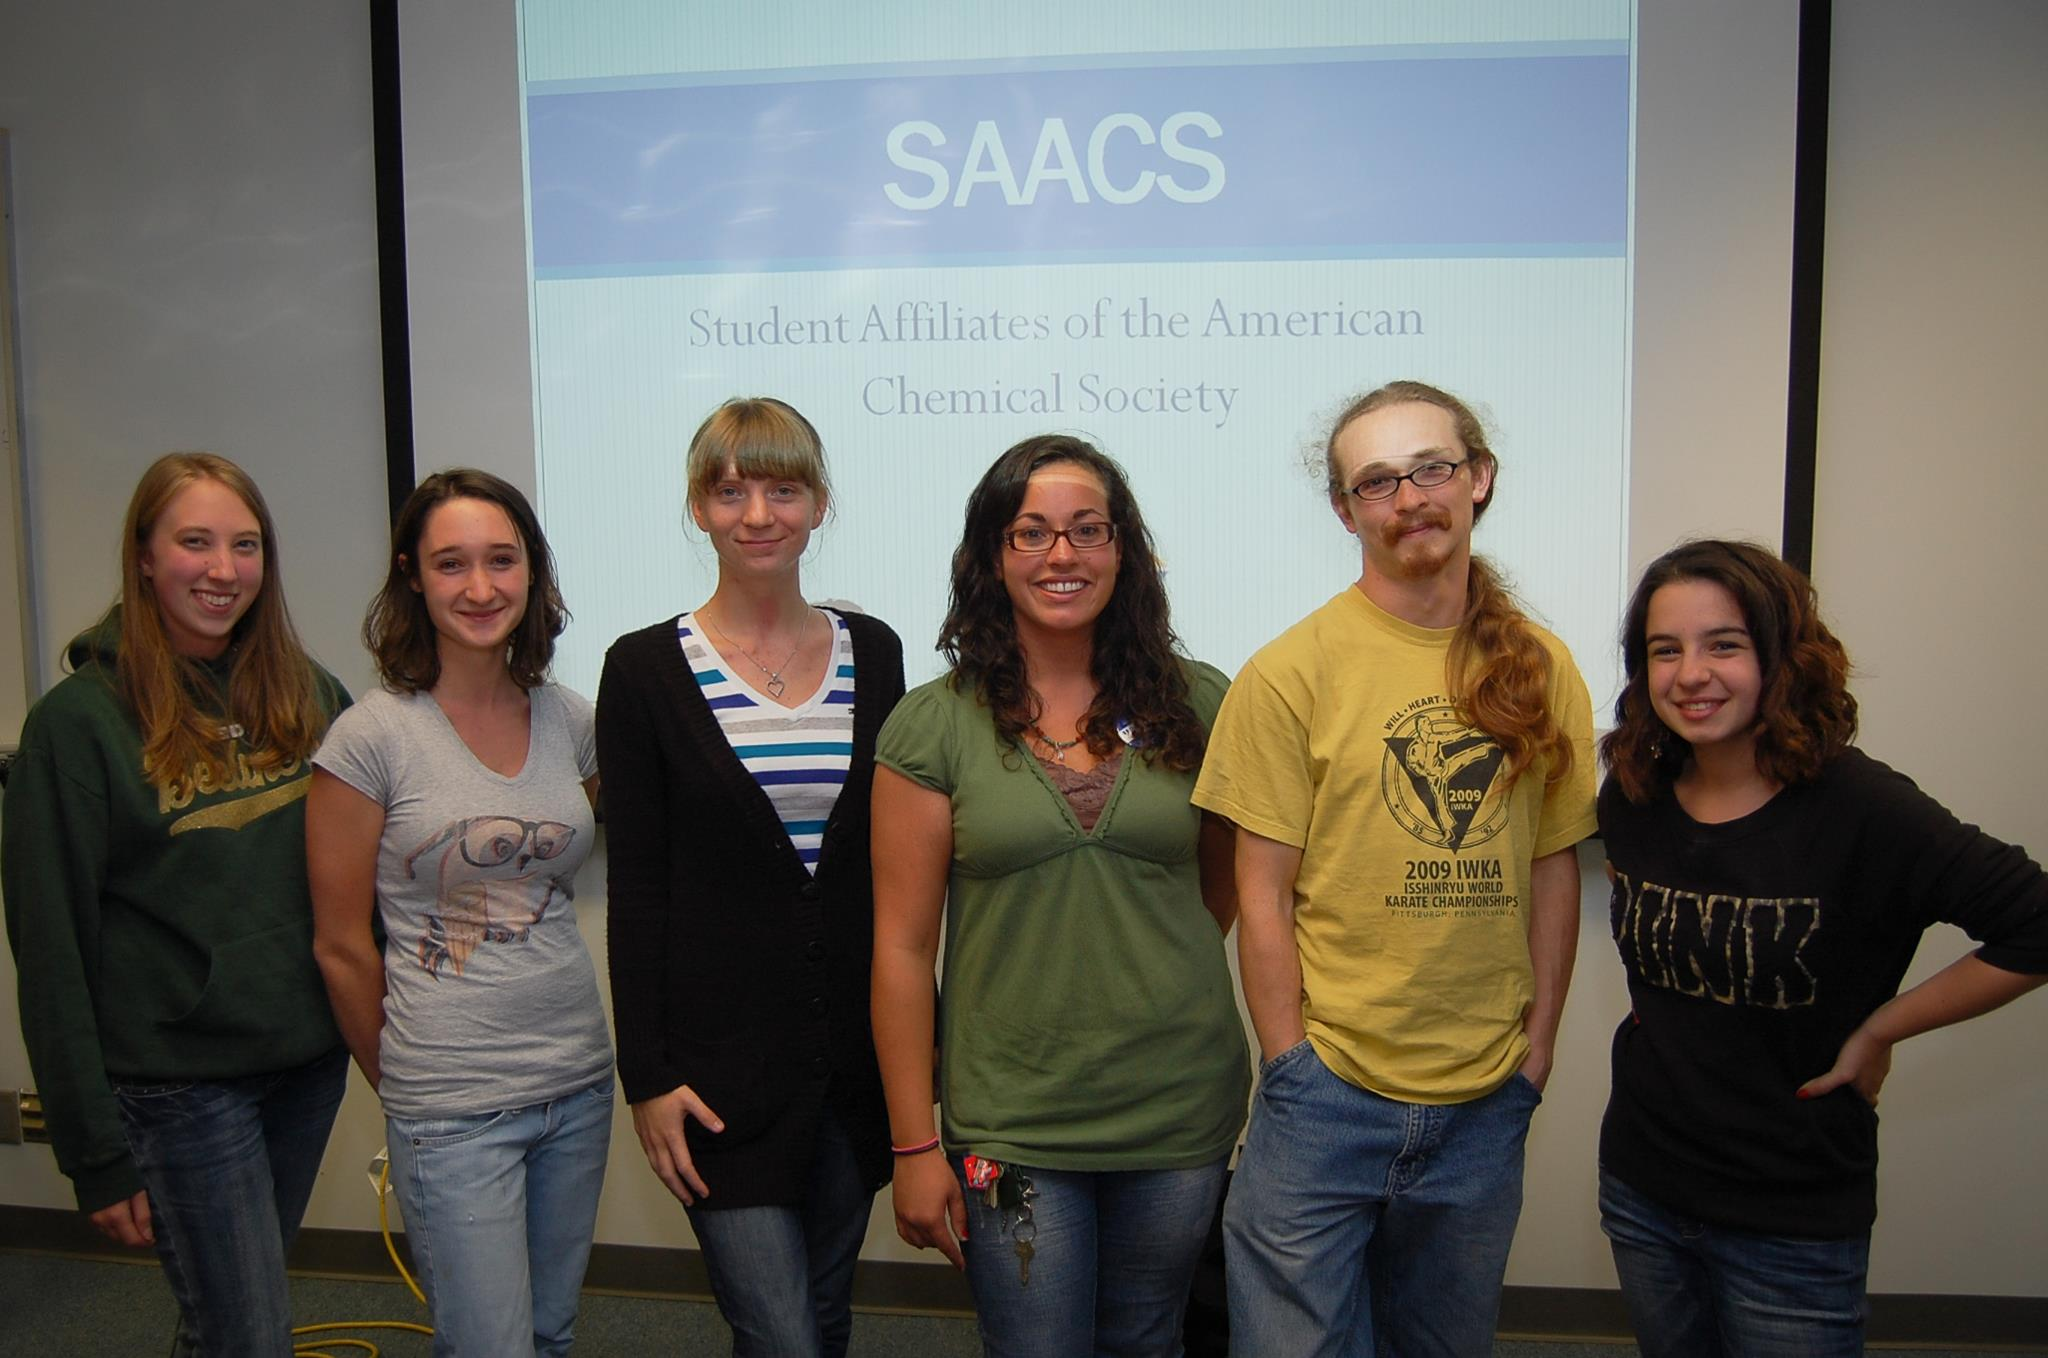 SAACS Student Officers for 2012-2013